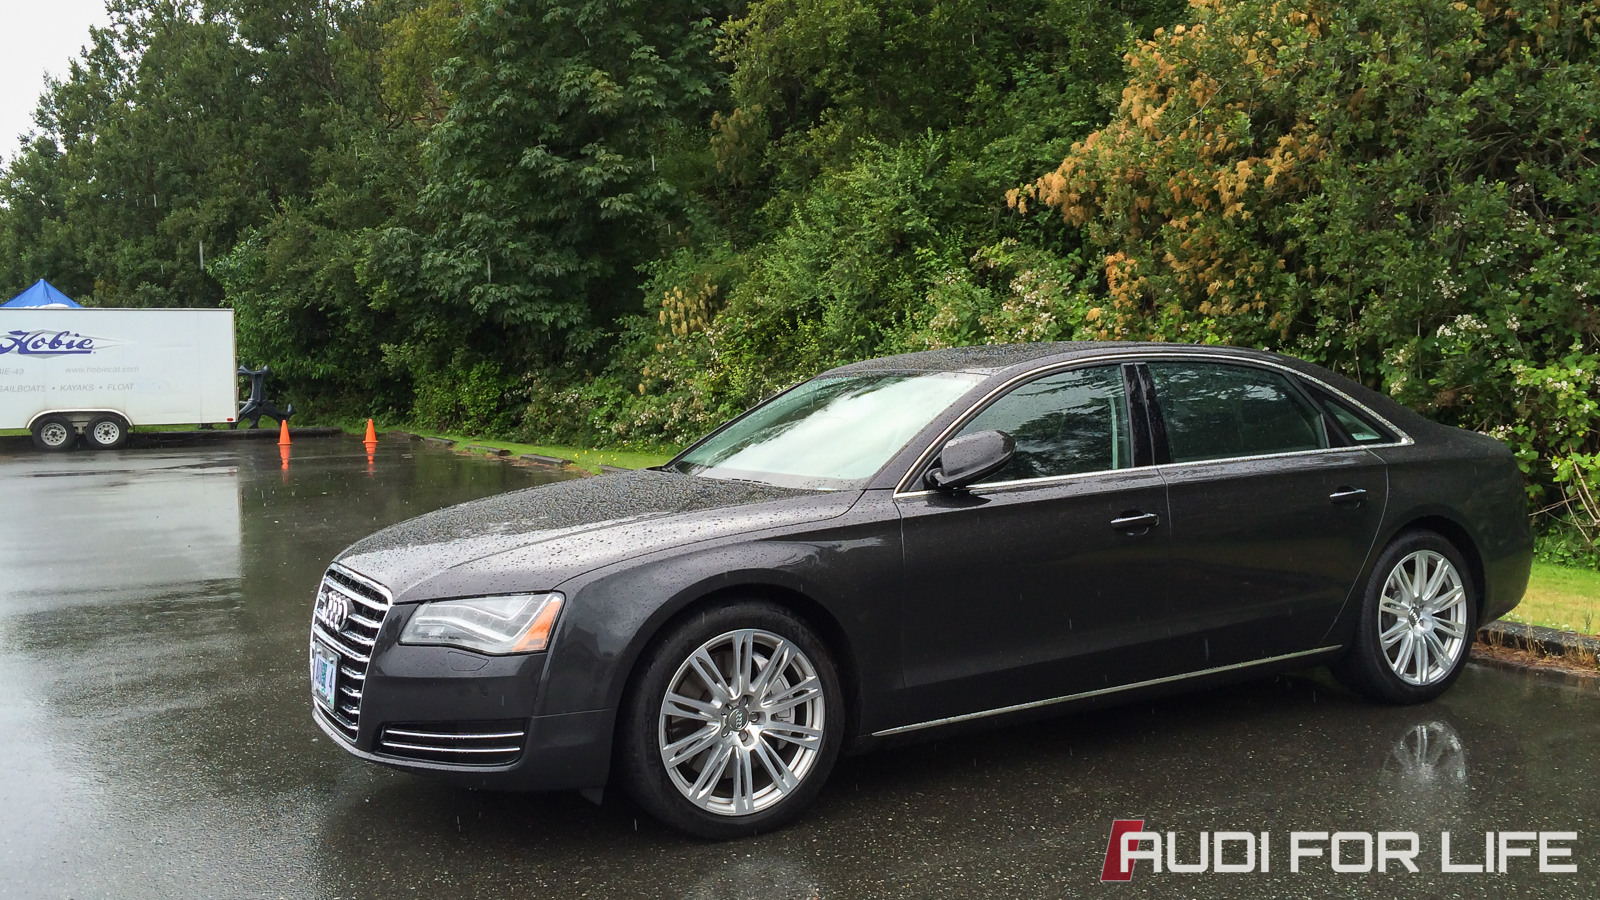 PT Cruisin' with an Audi A8 L 4.0T